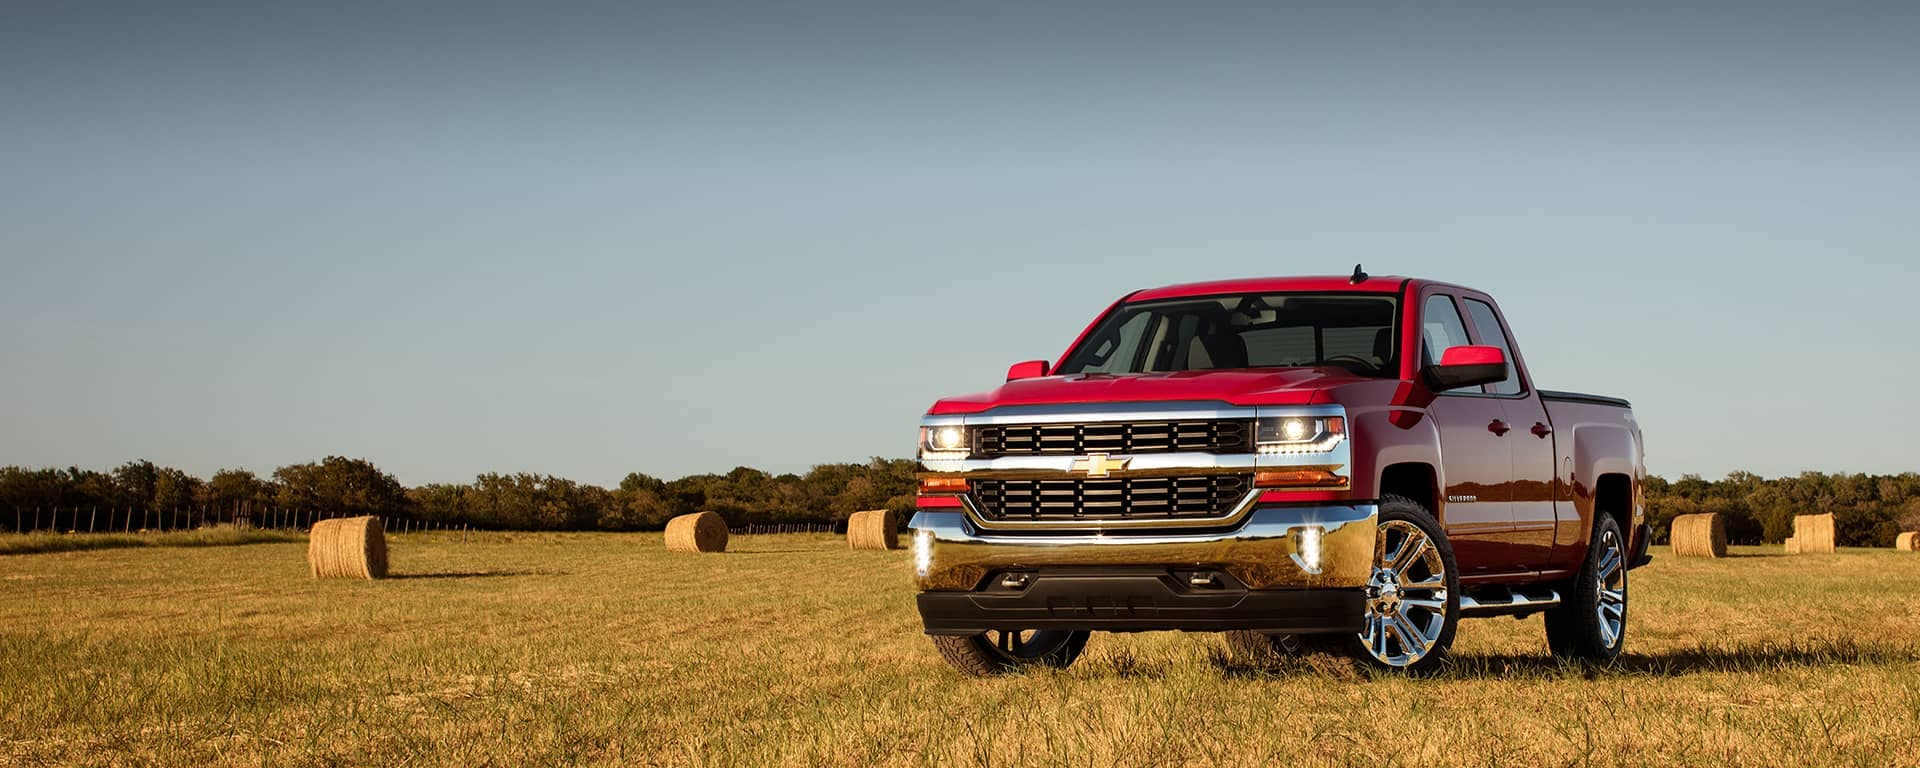 2018 Silverado 1500 Parked in a Field